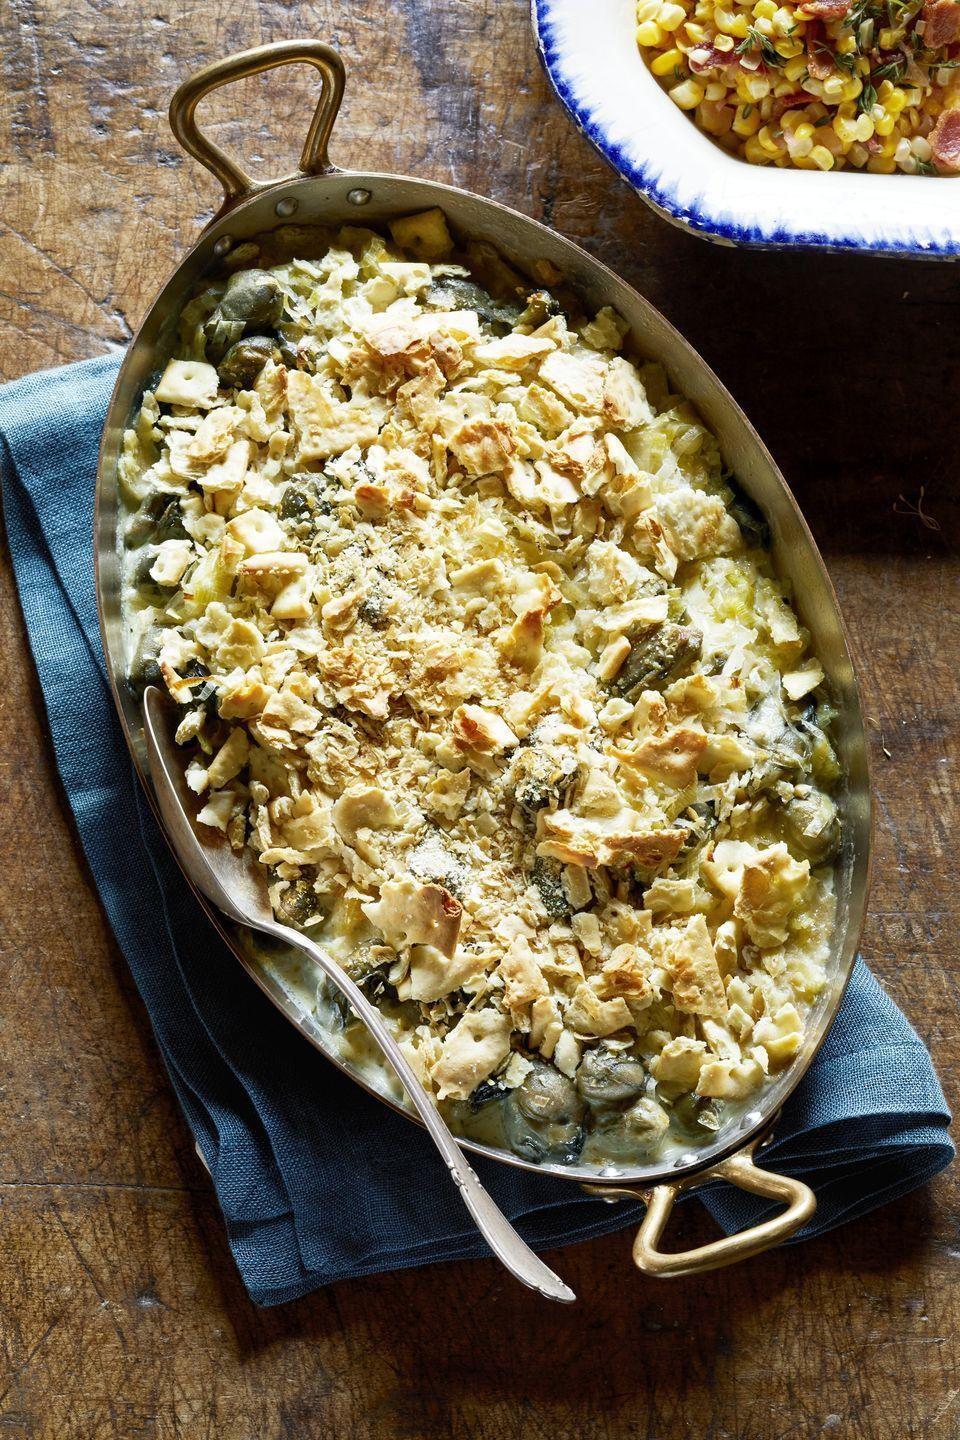 "<p>Just because it's cooler outside doesn't mean you can't bring a little bit of the ocean to your table. This dish is inspired by the sea and infuses oysters with leeks, vermouth, and saltines for an irresistible crunch.</p><p><strong><a href=""https://www.countryliving.com/food-drinks/a29132365/scalloped-oysters-recipe/"" rel=""nofollow noopener"" target=""_blank"" data-ylk=""slk:Get the recipe"" class=""link rapid-noclick-resp"">Get the recipe</a>.</strong></p><p><strong><a class=""link rapid-noclick-resp"" href=""https://www.amazon.com/dp/B074Z5X8MT/?tag=syn-yahoo-20&ascsubtag=%5Bartid%7C10050.g.896%5Bsrc%7Cyahoo-us"" rel=""nofollow noopener"" target=""_blank"" data-ylk=""slk:SHOP BAKING DISHES"">SHOP BAKING DISHES</a><br></strong></p>"